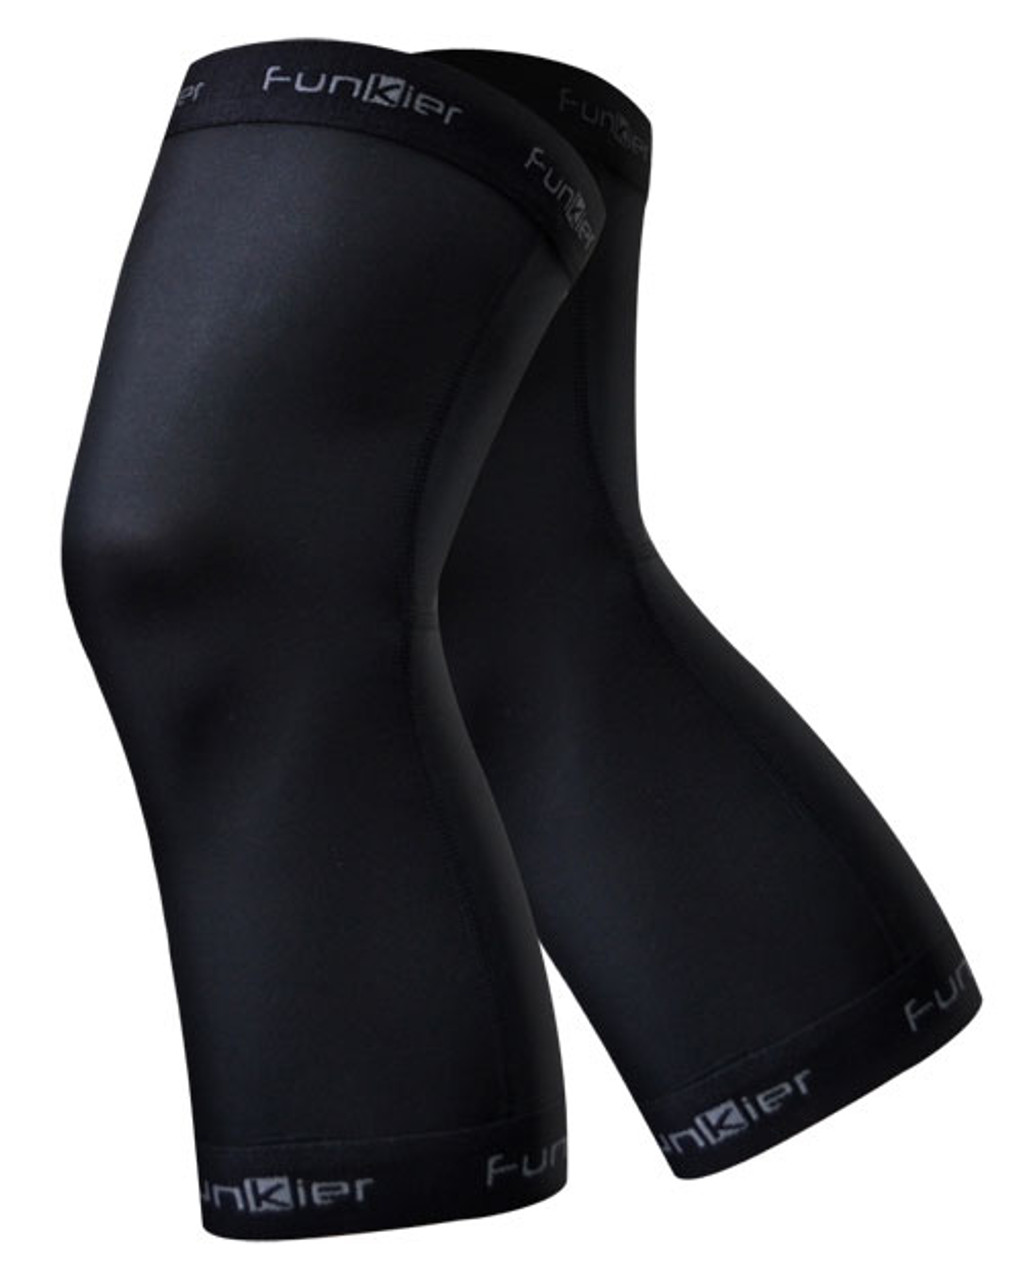 Funkier Verin Summer Knee Warmers KW-01